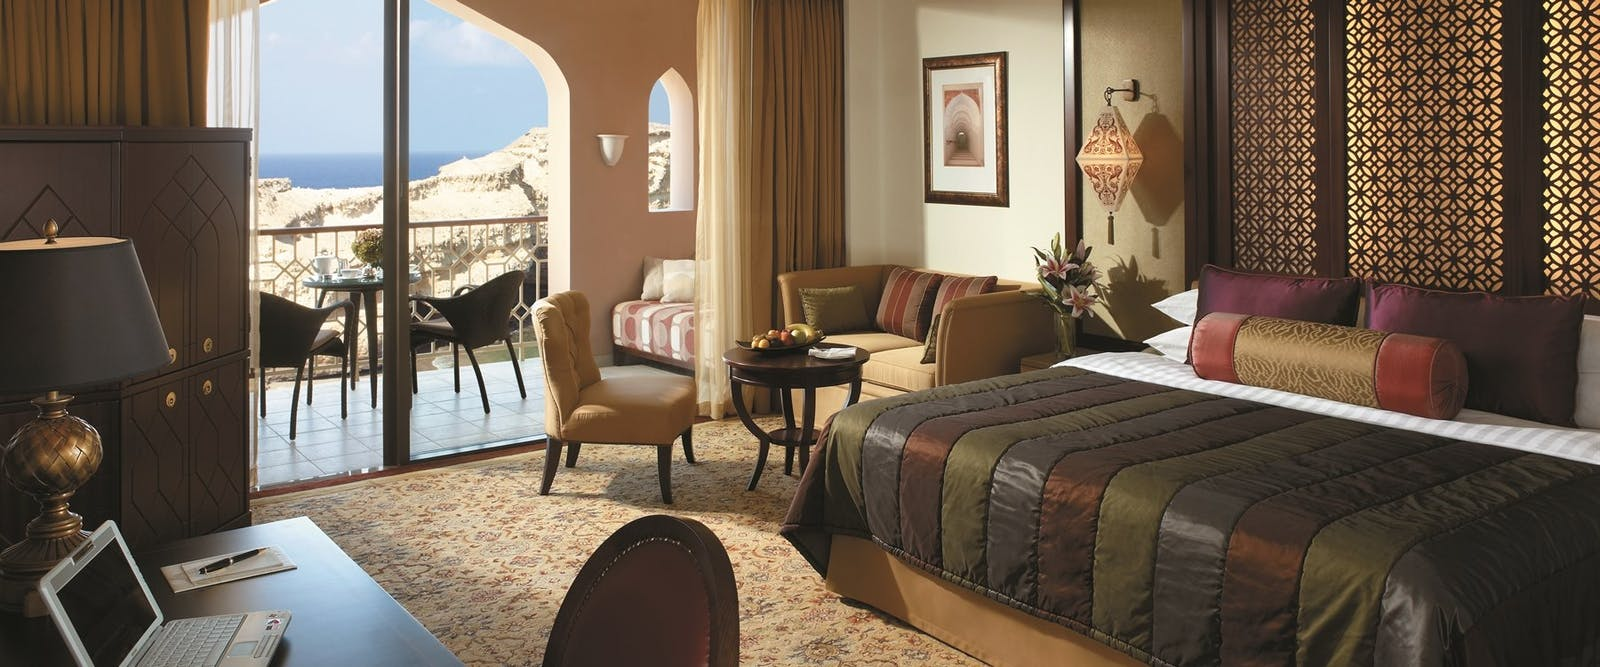 Deluxe room at Shangri-La's Al Husn Resort & Spa